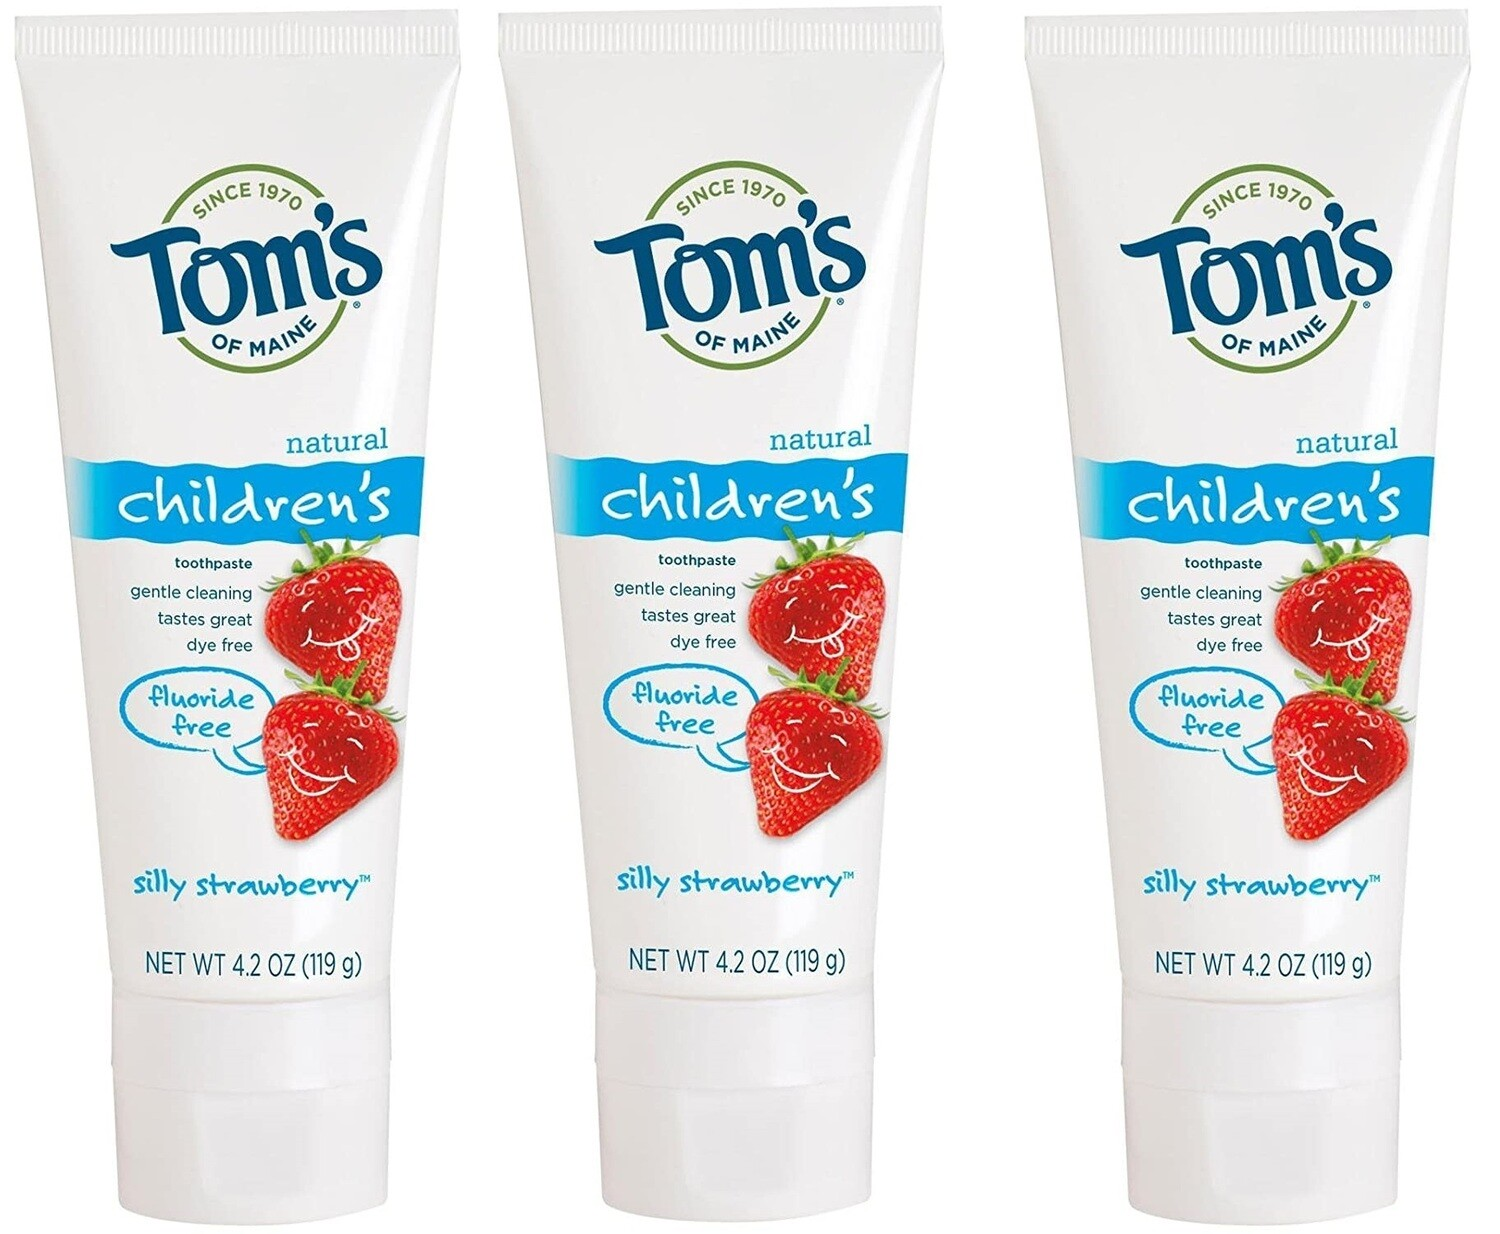 Toms of Maine Fluoride Free Childrens Toothpaste, Silly Strawberry, 4.2 Ounce, Pack of 3